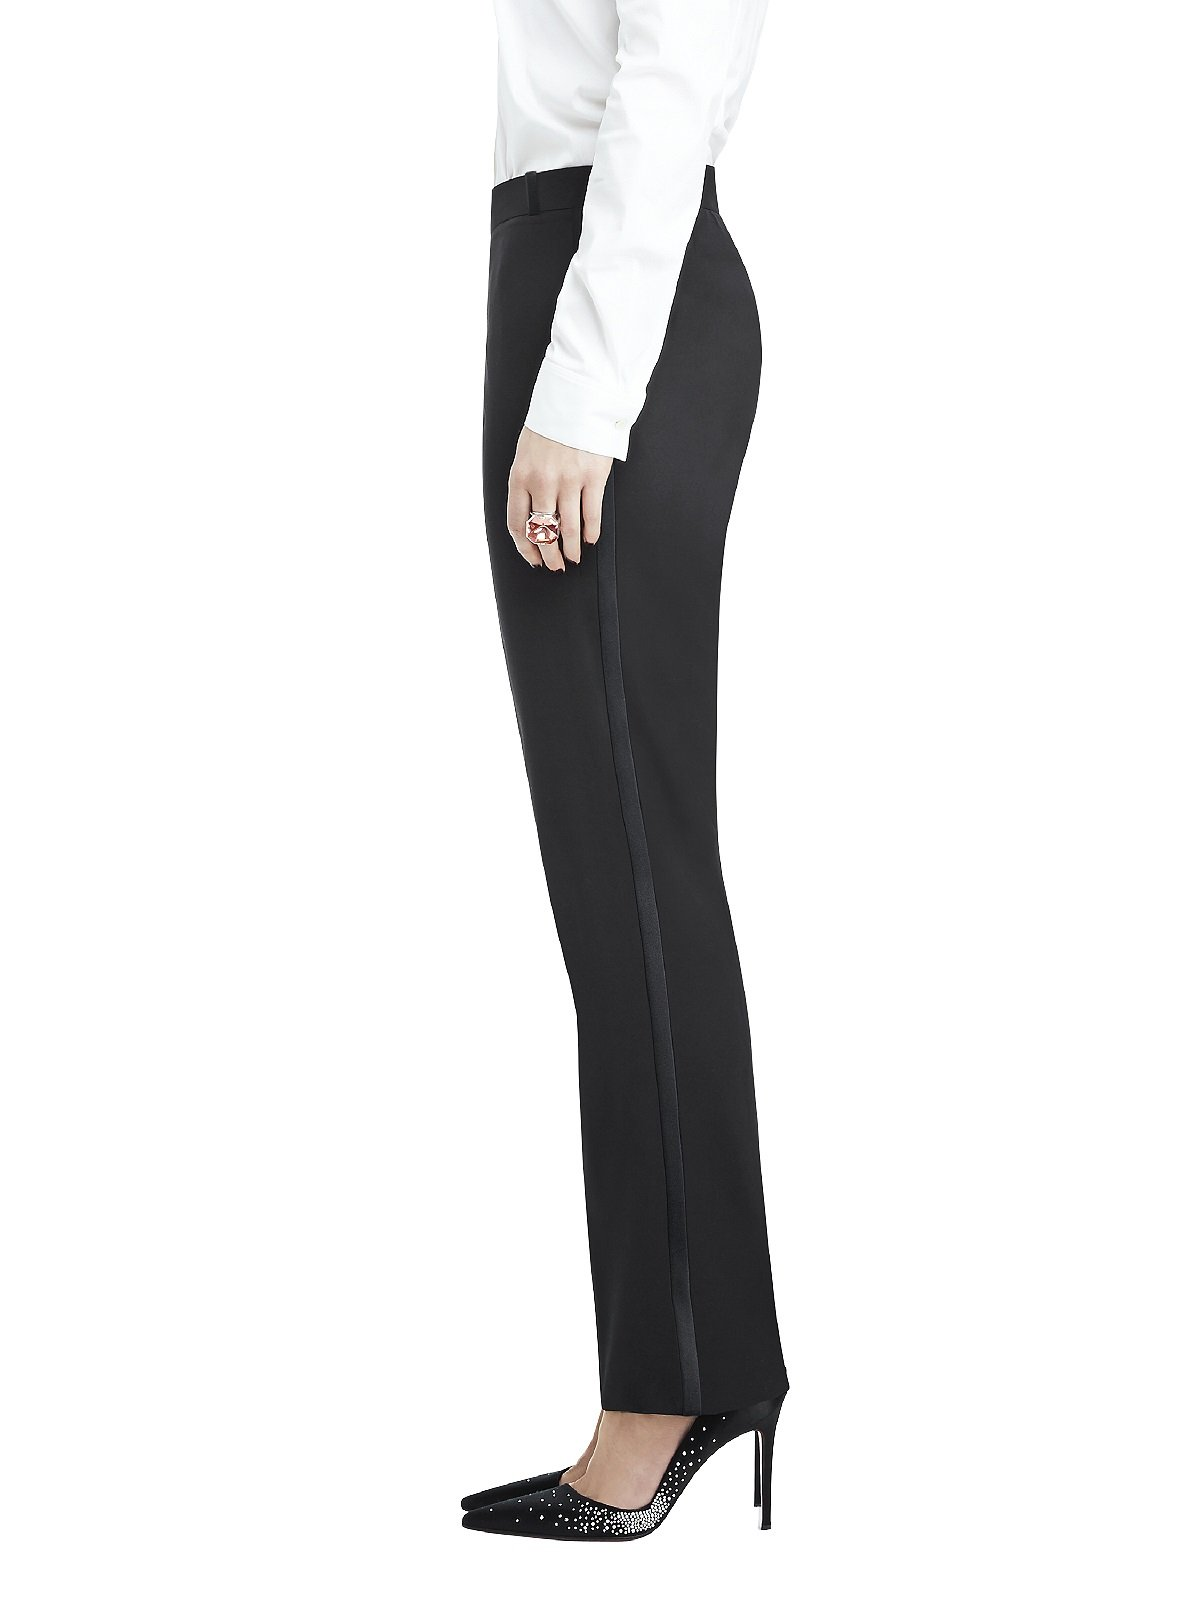 Marlowe Women's Slim Wool Tuxedo Pant with Satin Stripe by Dessy Group - Black - Size 18